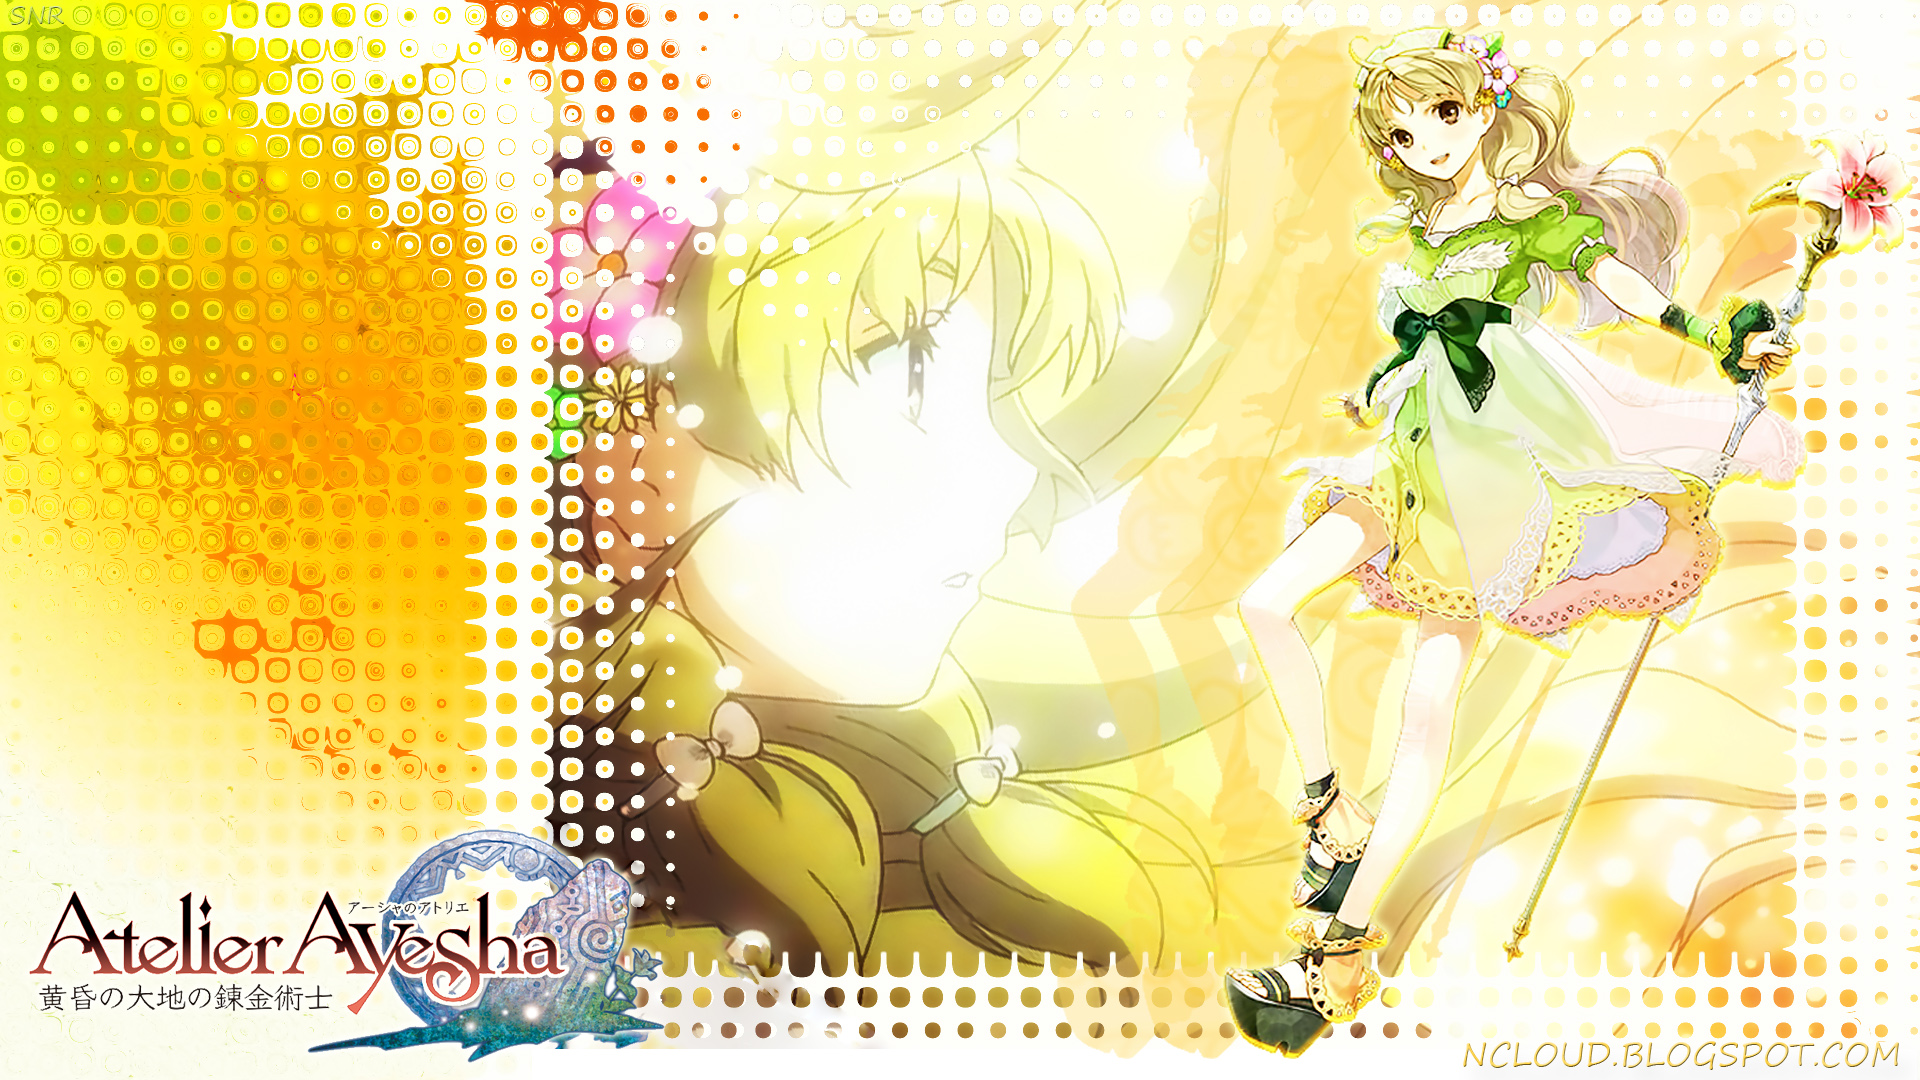 Games Movies Music Anime My Atelier Ayesha Wallpaper 2 1920x1080